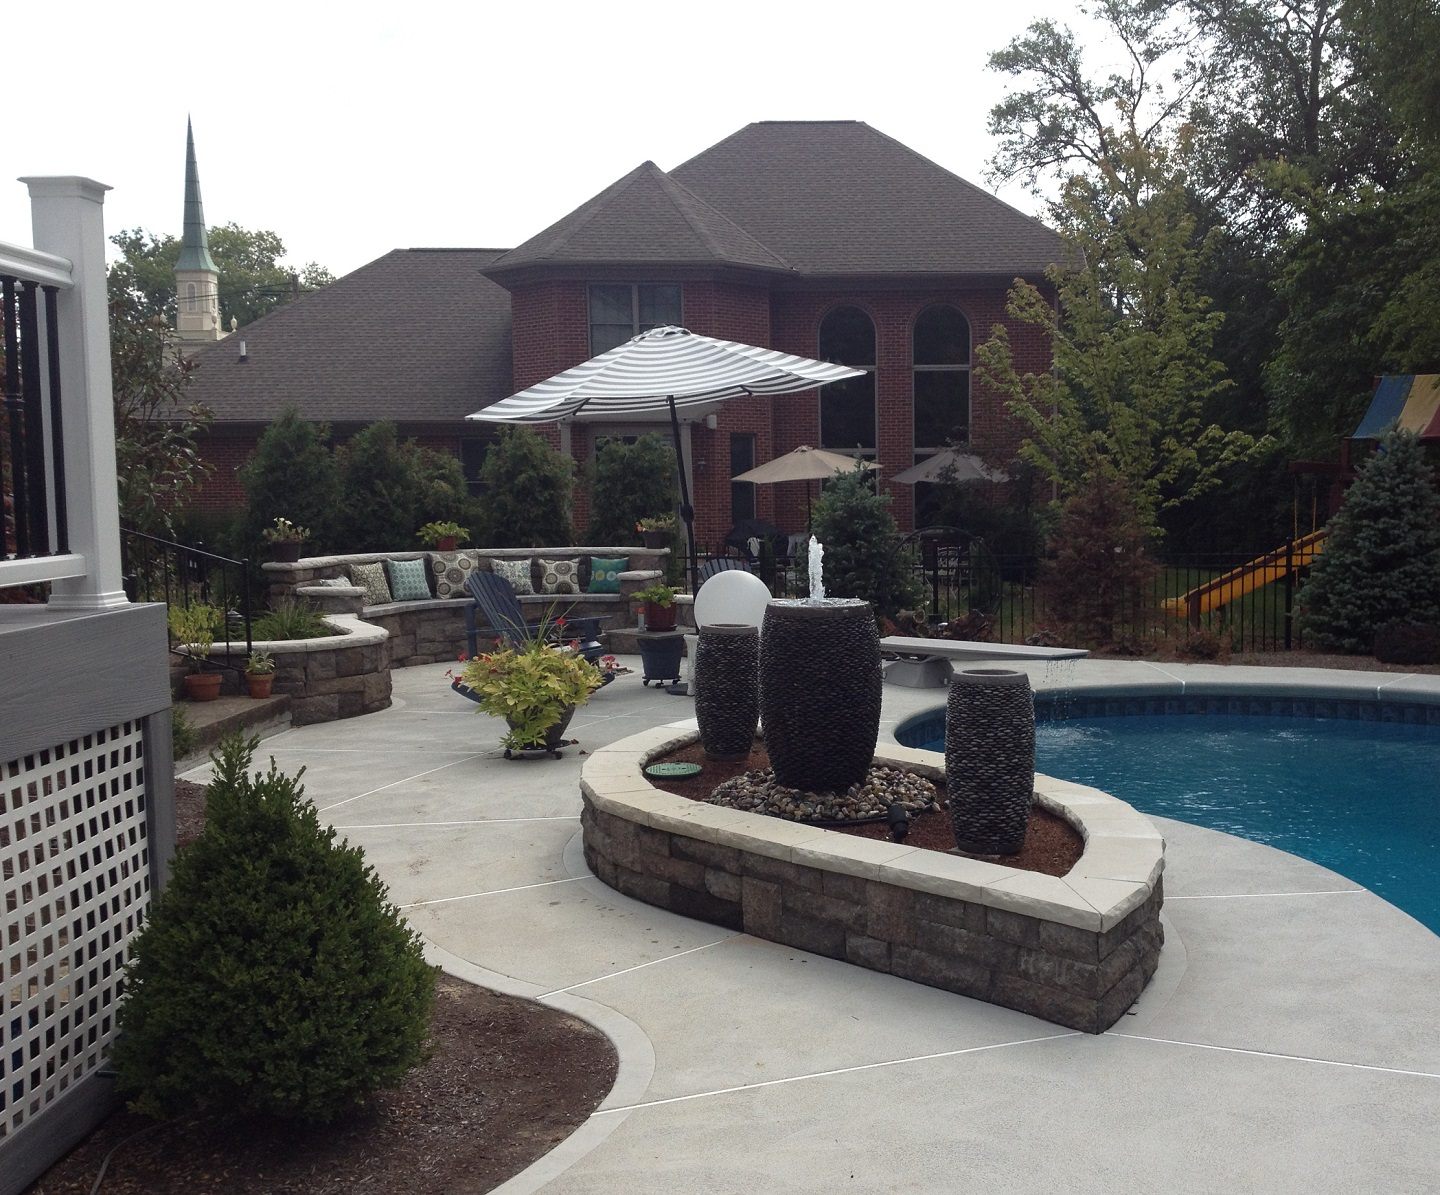 Custom pool patio in West Chester, OH with water features